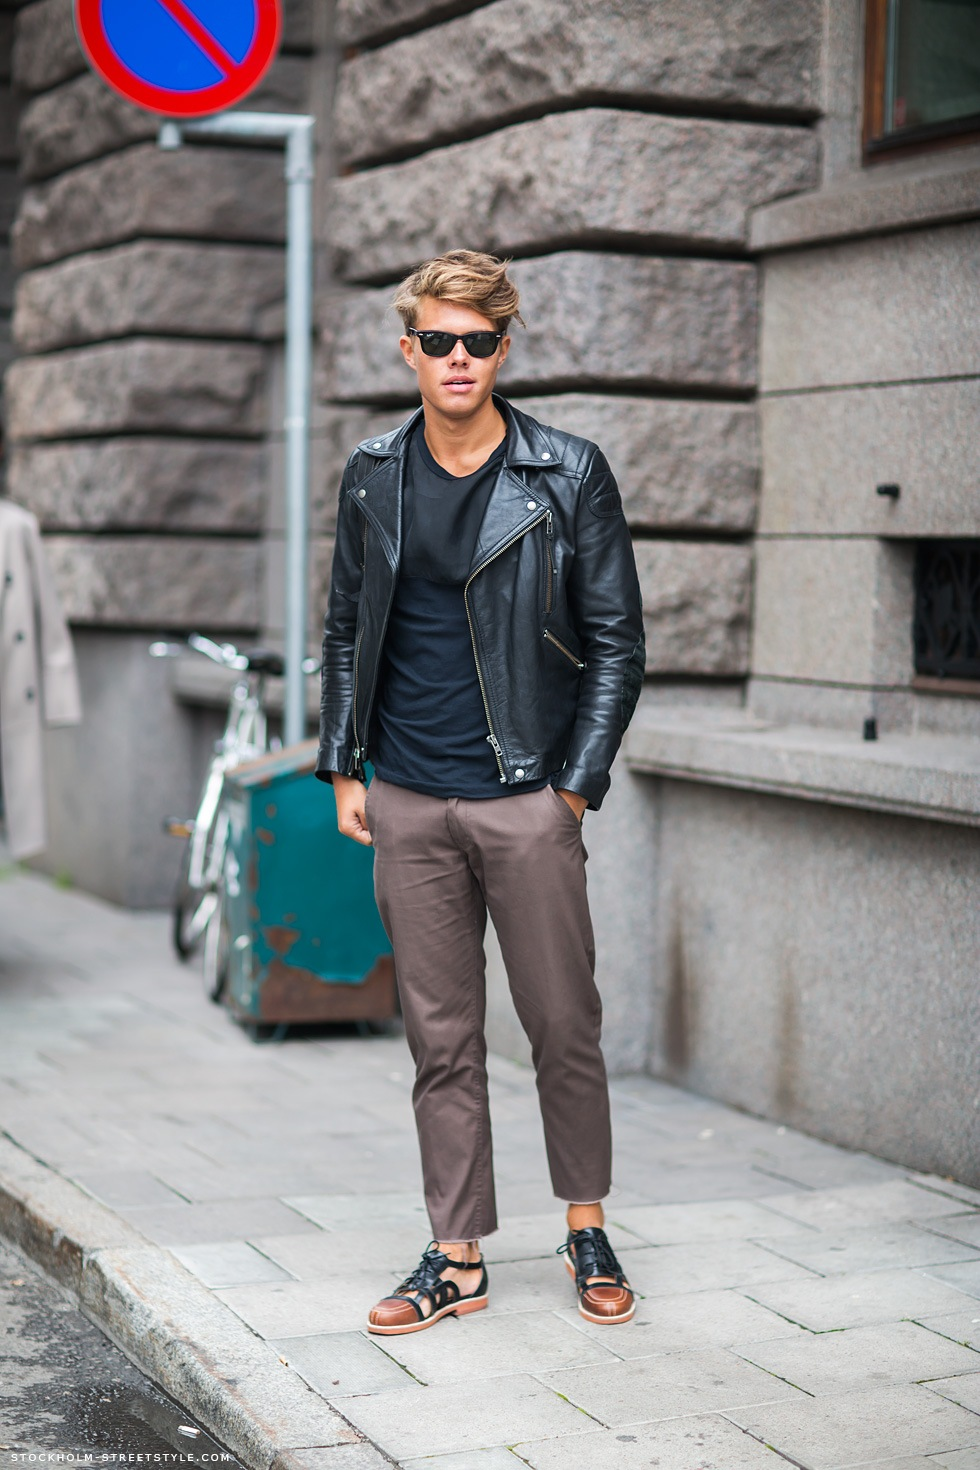 The latest men's street style photographs and trends for Our photographers snap the best-dressed real men from across the globe. A gallery of inspirational men's street style photography from around the world, courtesy of The FashionBeans Street Style Collective.